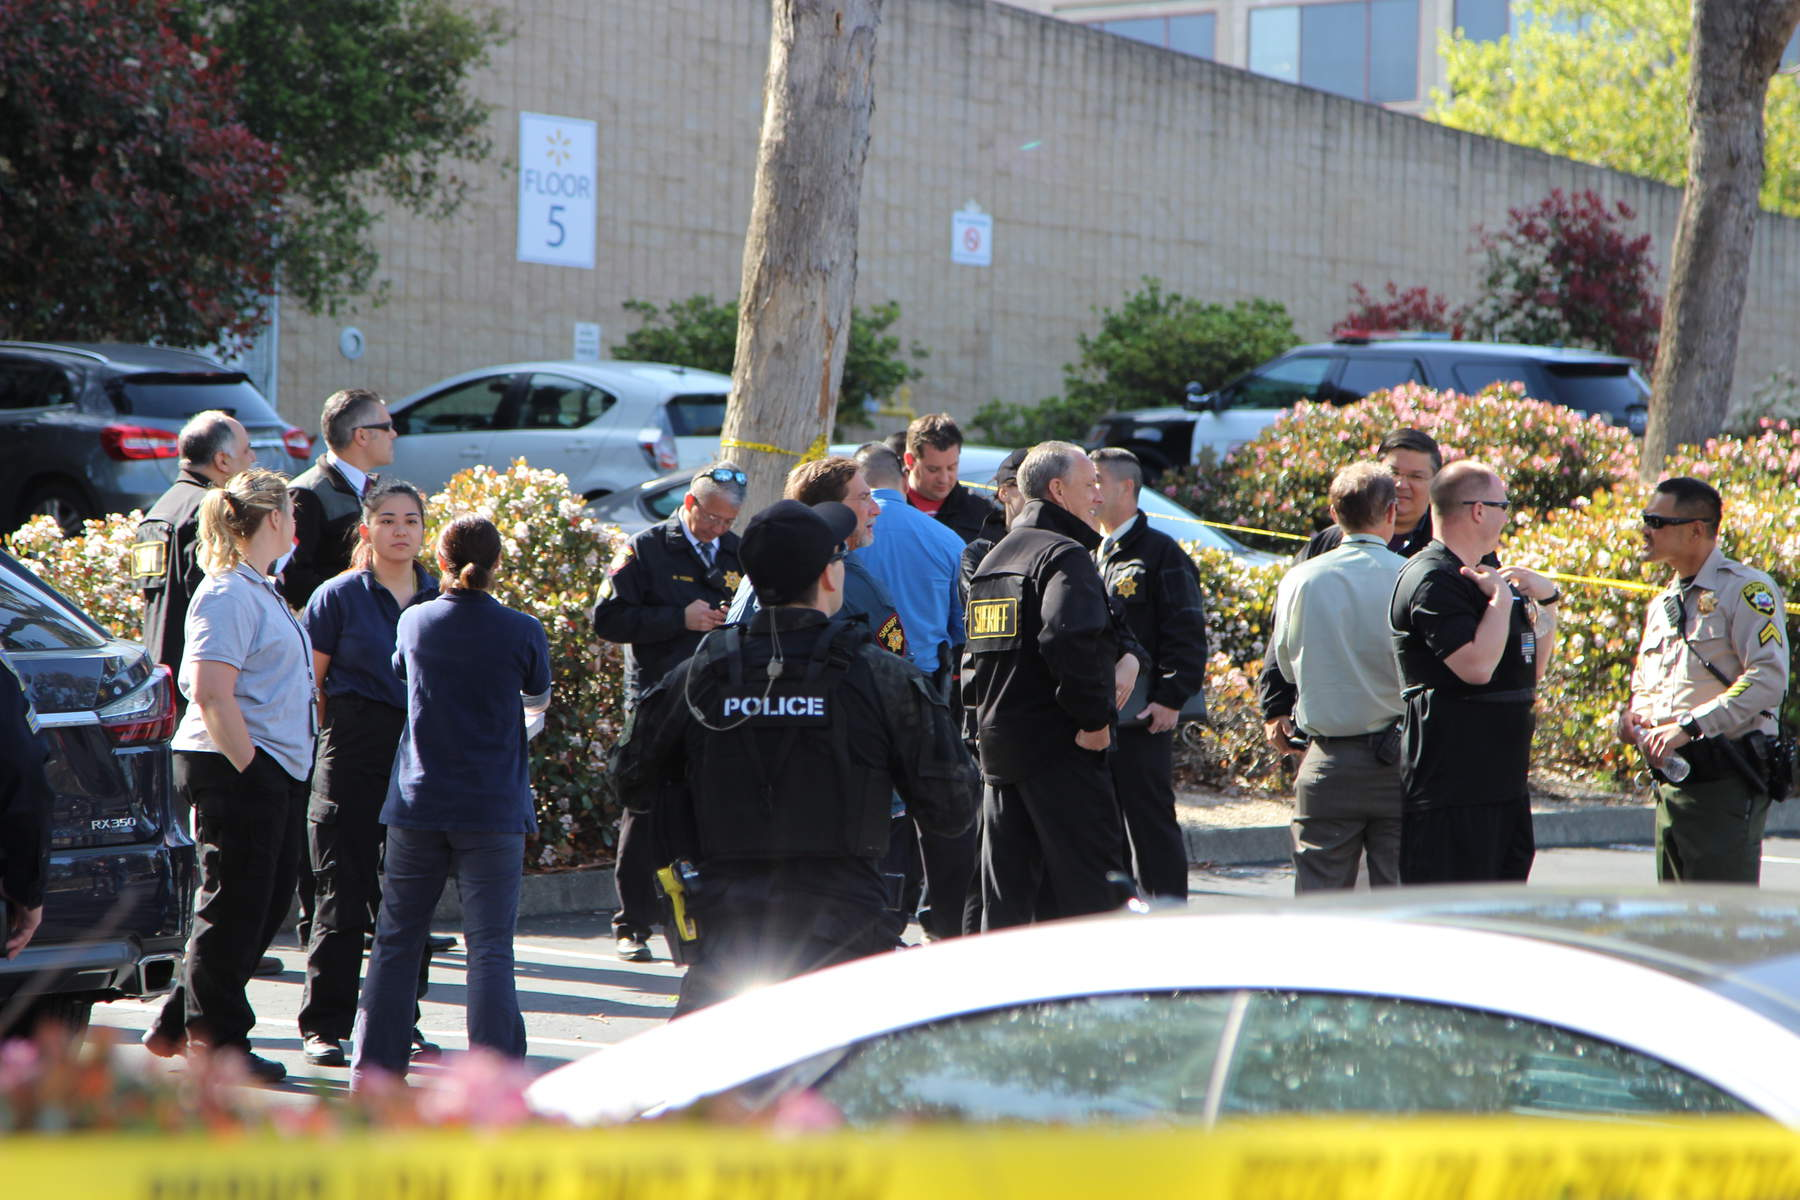 Law enforcement officials gather near the scene of the shooting at the YouTube headquarters in San Bruno on Tuesday, April 3, 2018. (Dylan Freedman/Peninsula Press)